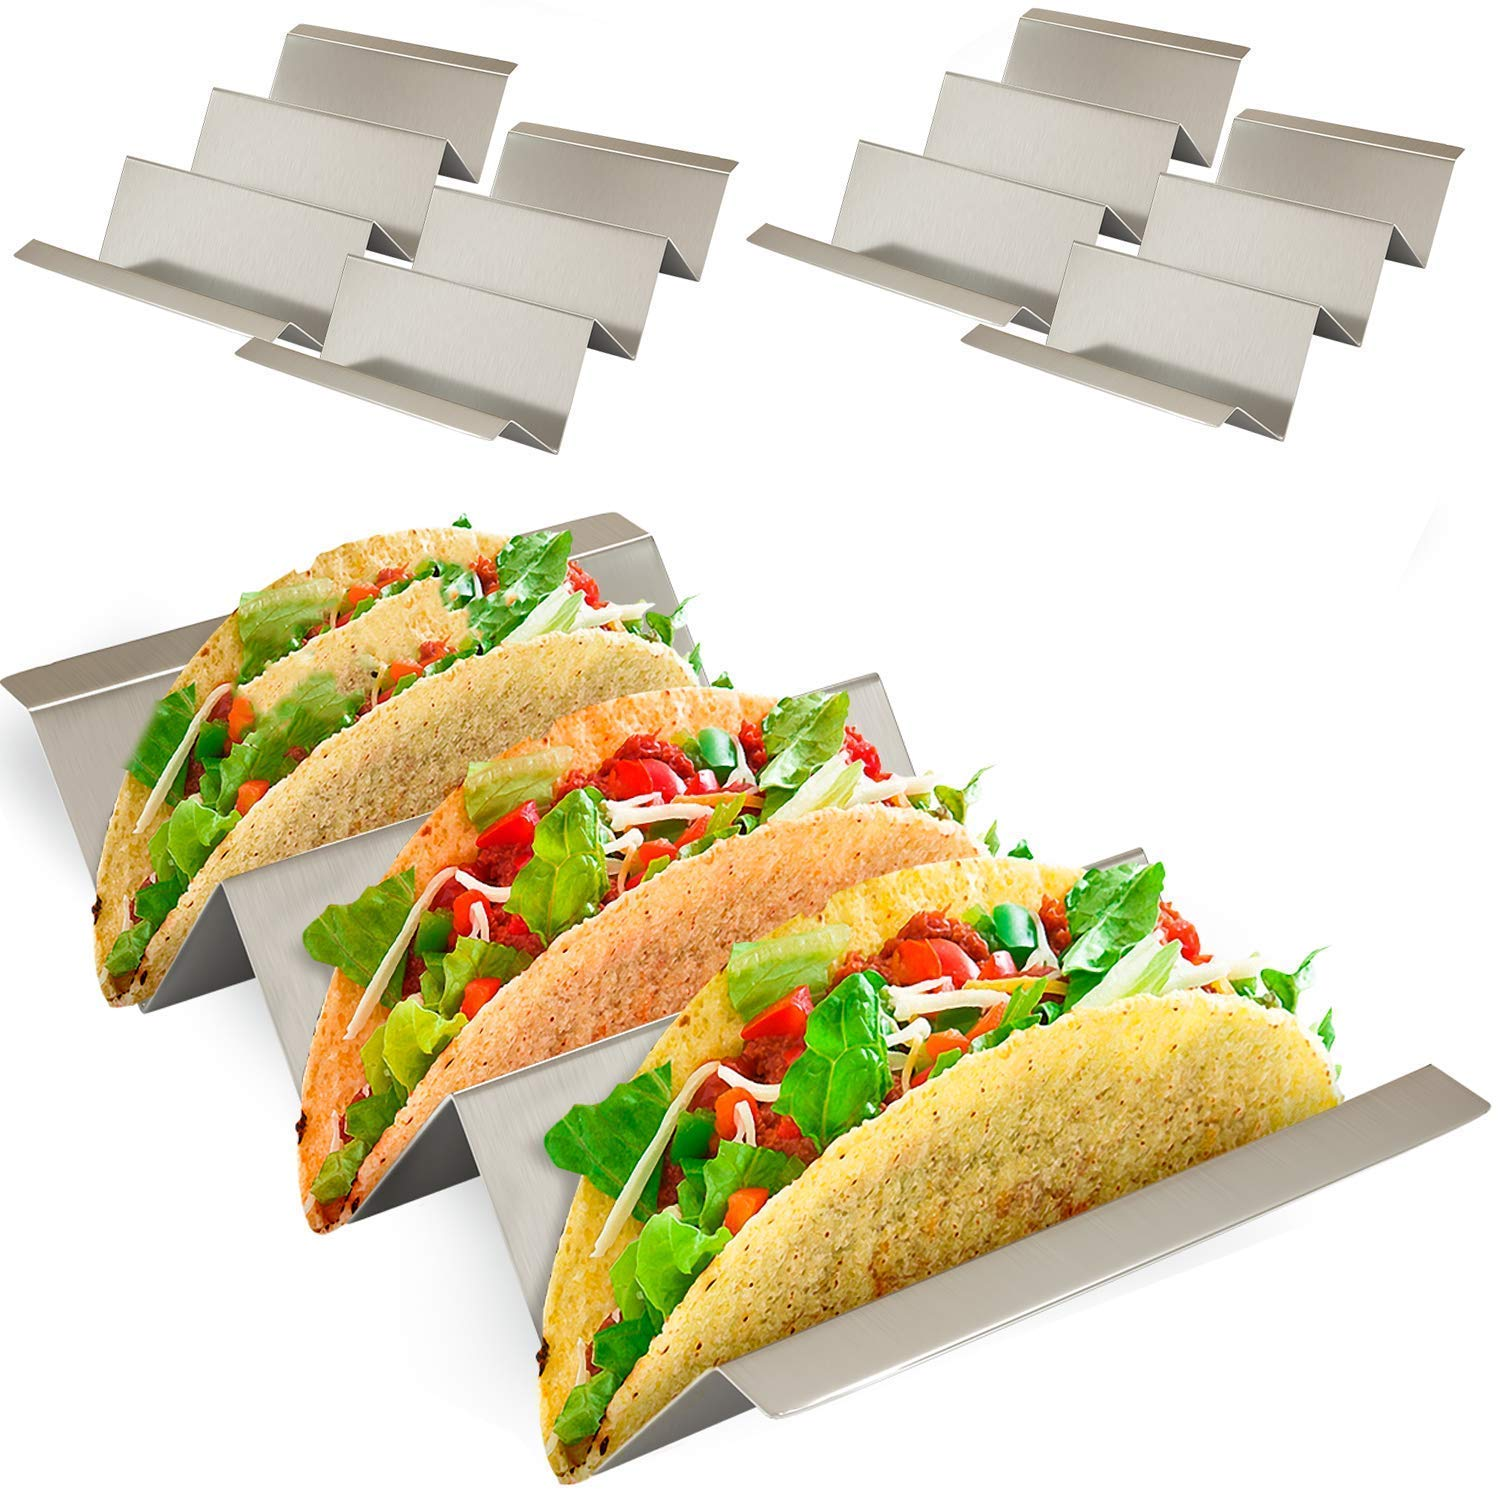 "PLUNACK Taco Holder PLStainless Steel Taco Stand, Taco Truck Tray Style, Rack Holds Up to 3 Tacos Each Oven Safe for Baking, Dishwasher and Grill Safe, 4"" x 8"" (4 PACK)"